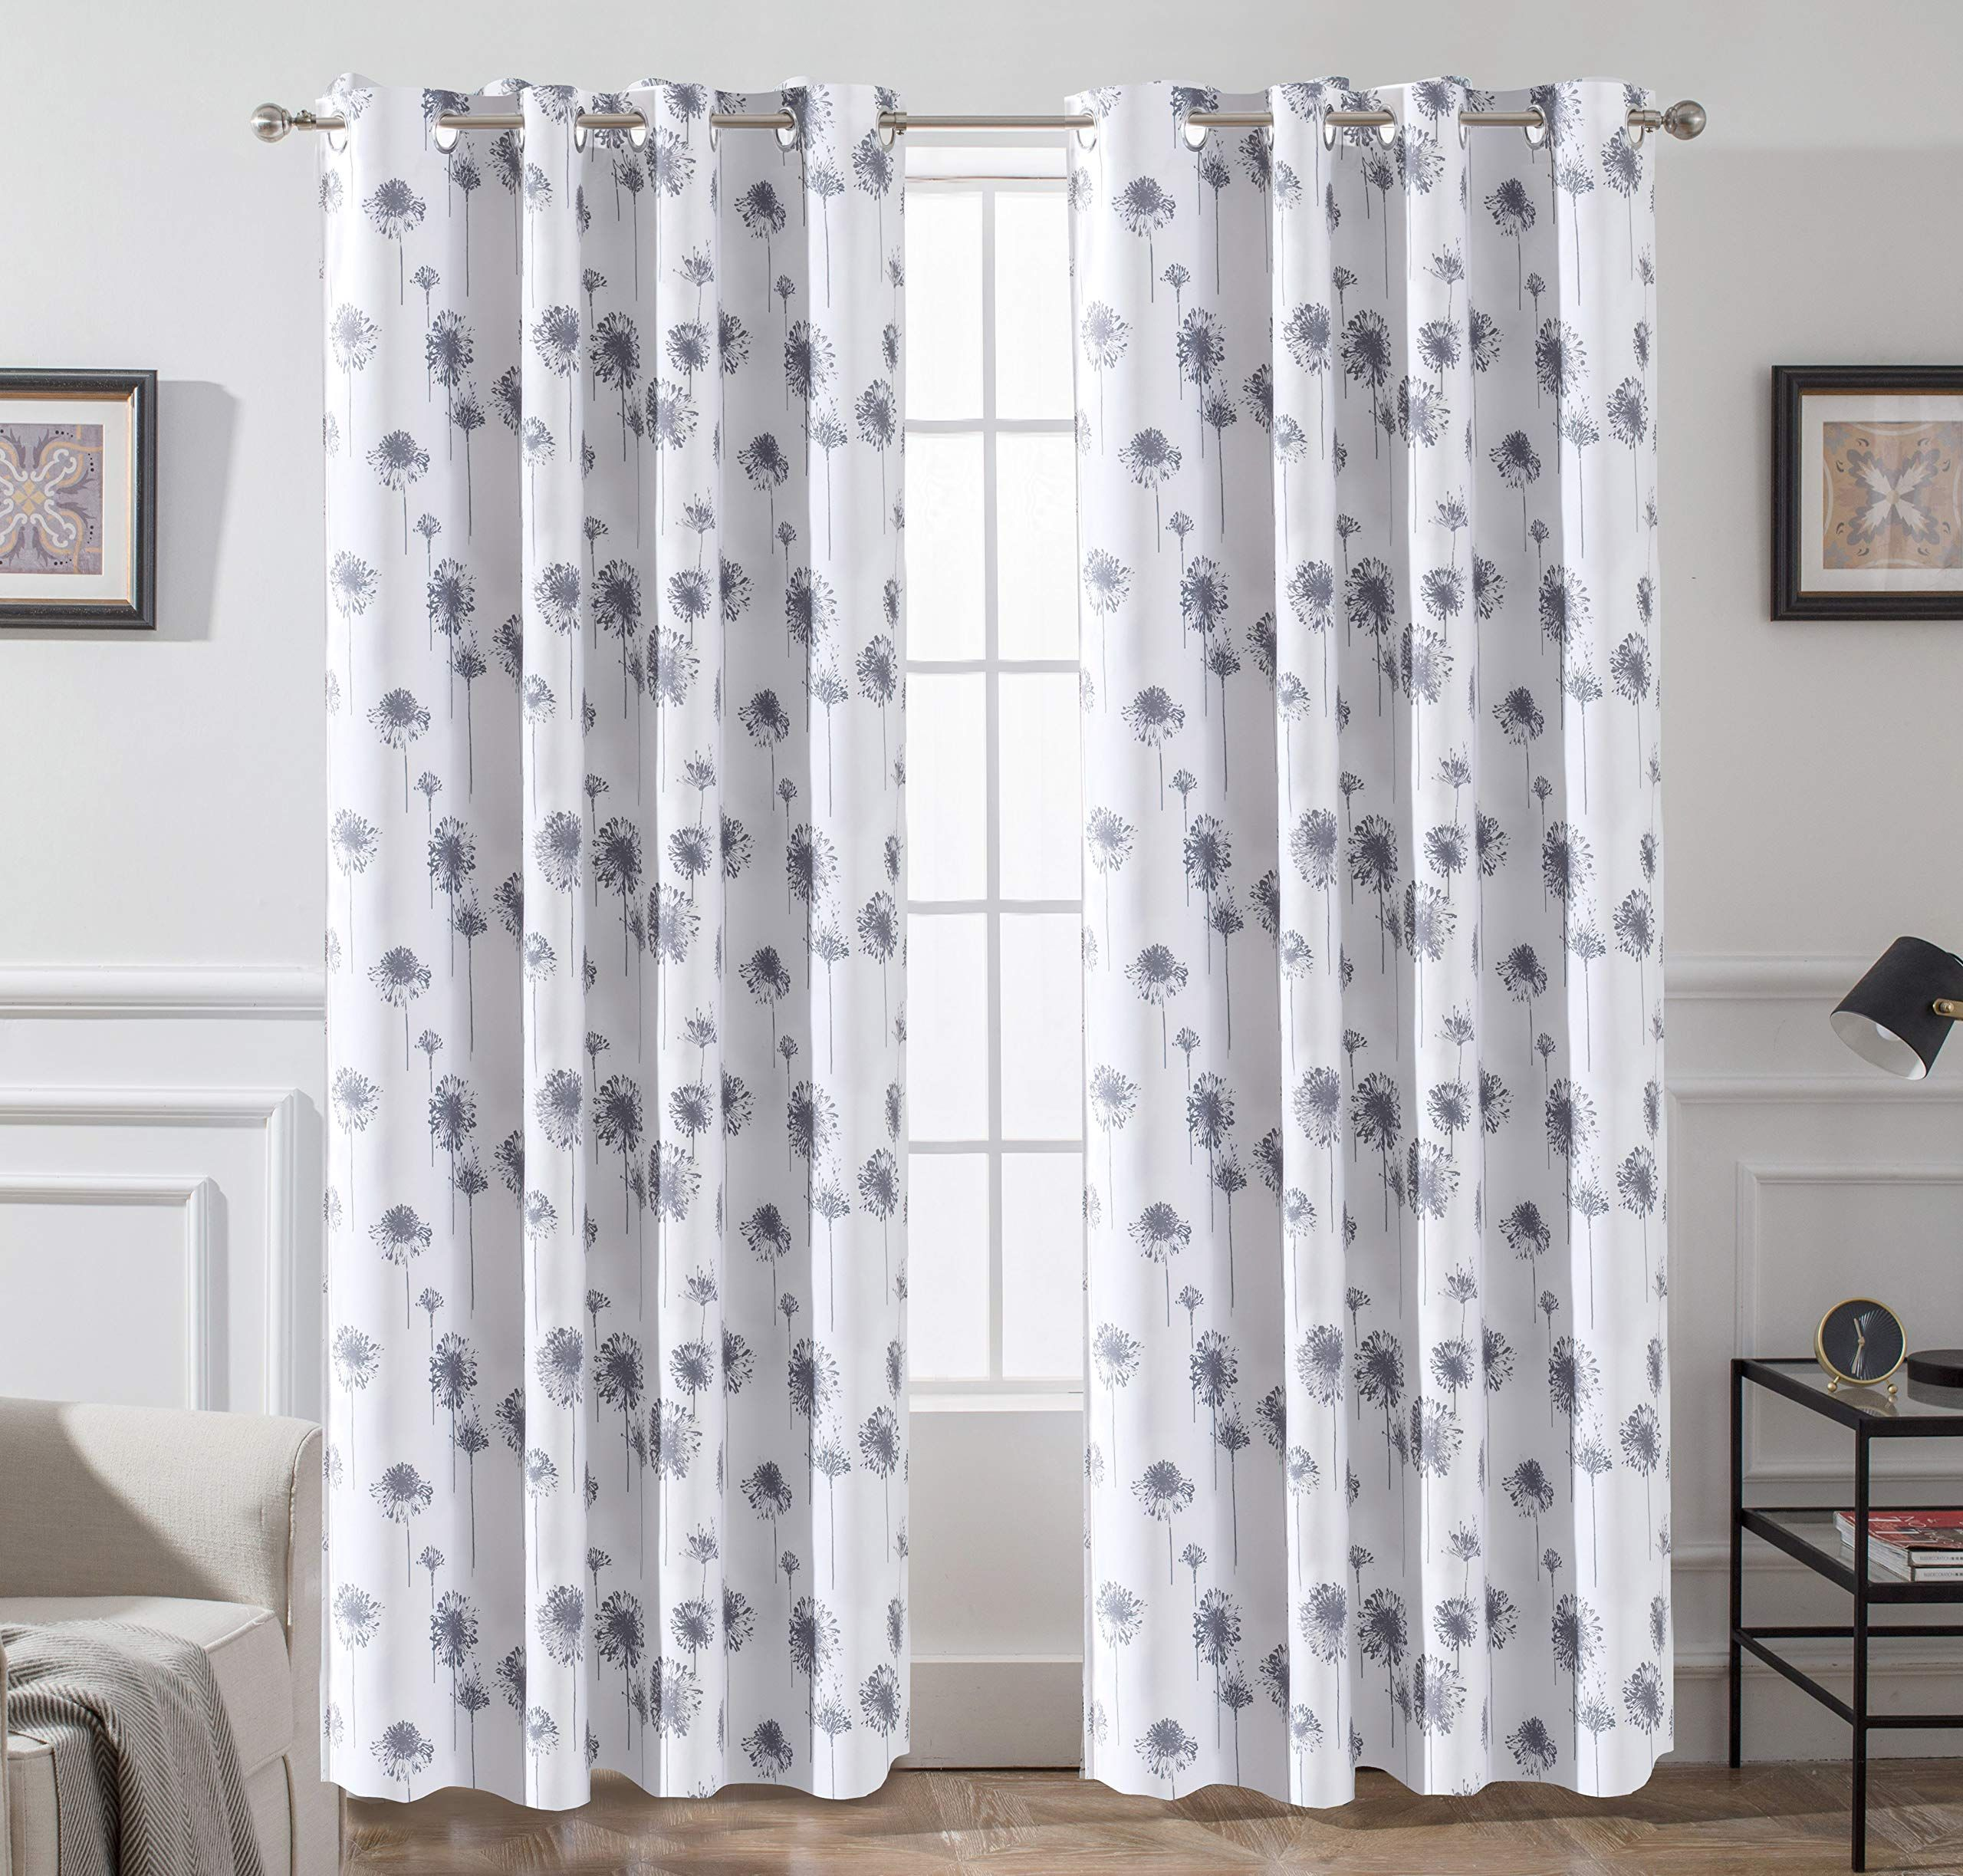 Driftaway Dandelion Floral Botanic Lined Thermal Insulated Blackout Room Darkening Grommet Energy Saving Window Panel Curtains Curtains Living Room Curtains